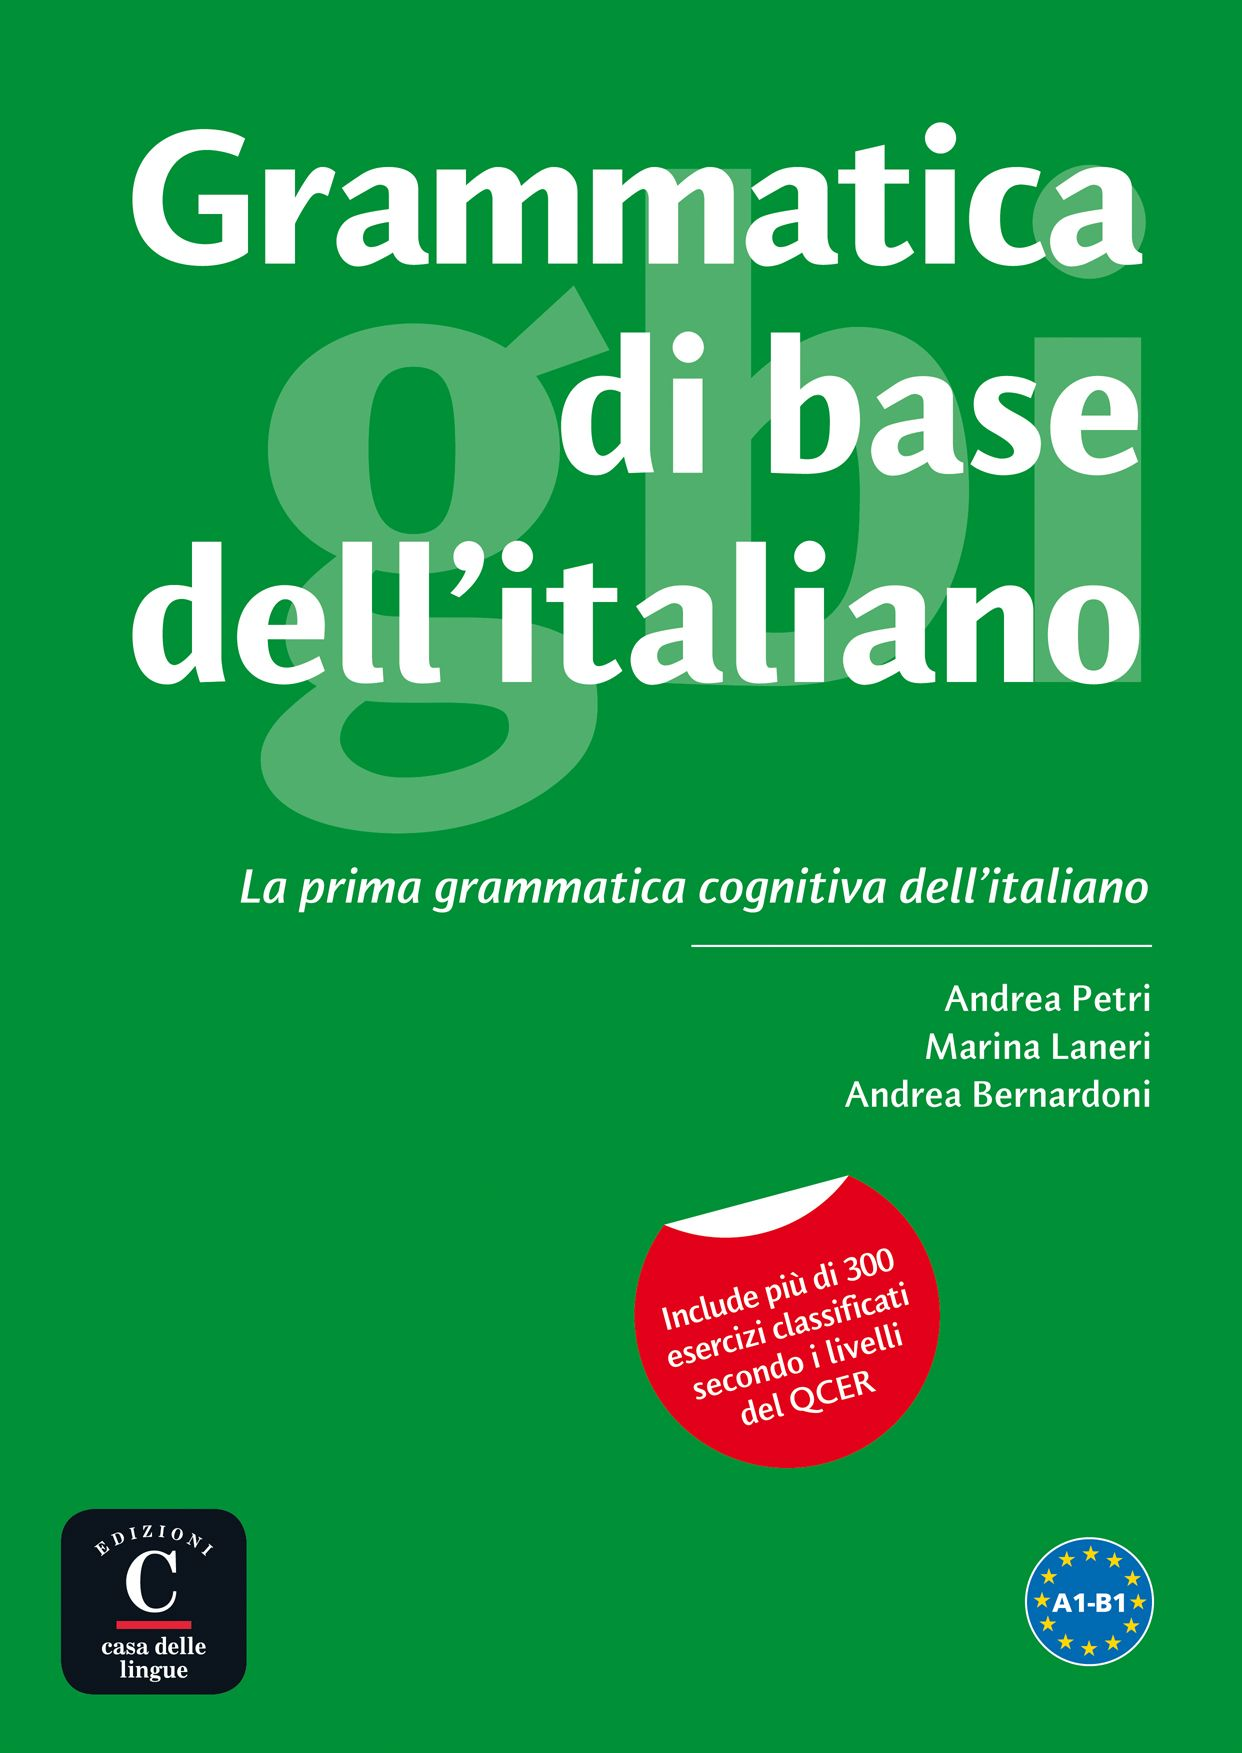 GRAMMATICA DI BASE DELL'ITALIANO Libro - 1